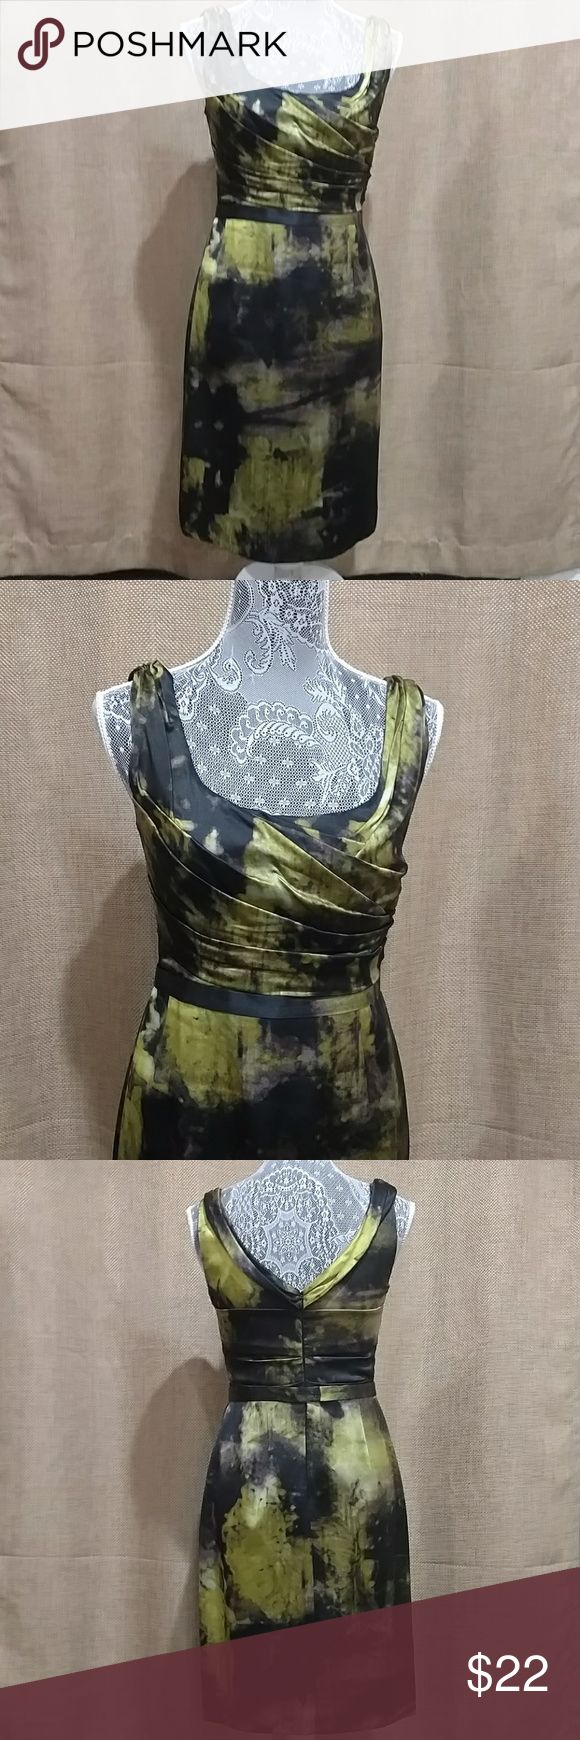 Gorgeous Elie Tahari Dress Worn once. Size 4. No flaws at all. I'm 5'6 tall and this falls right above my knee. Fully lined but very lightweight. Elie Tahari Dresses Asymmetrical